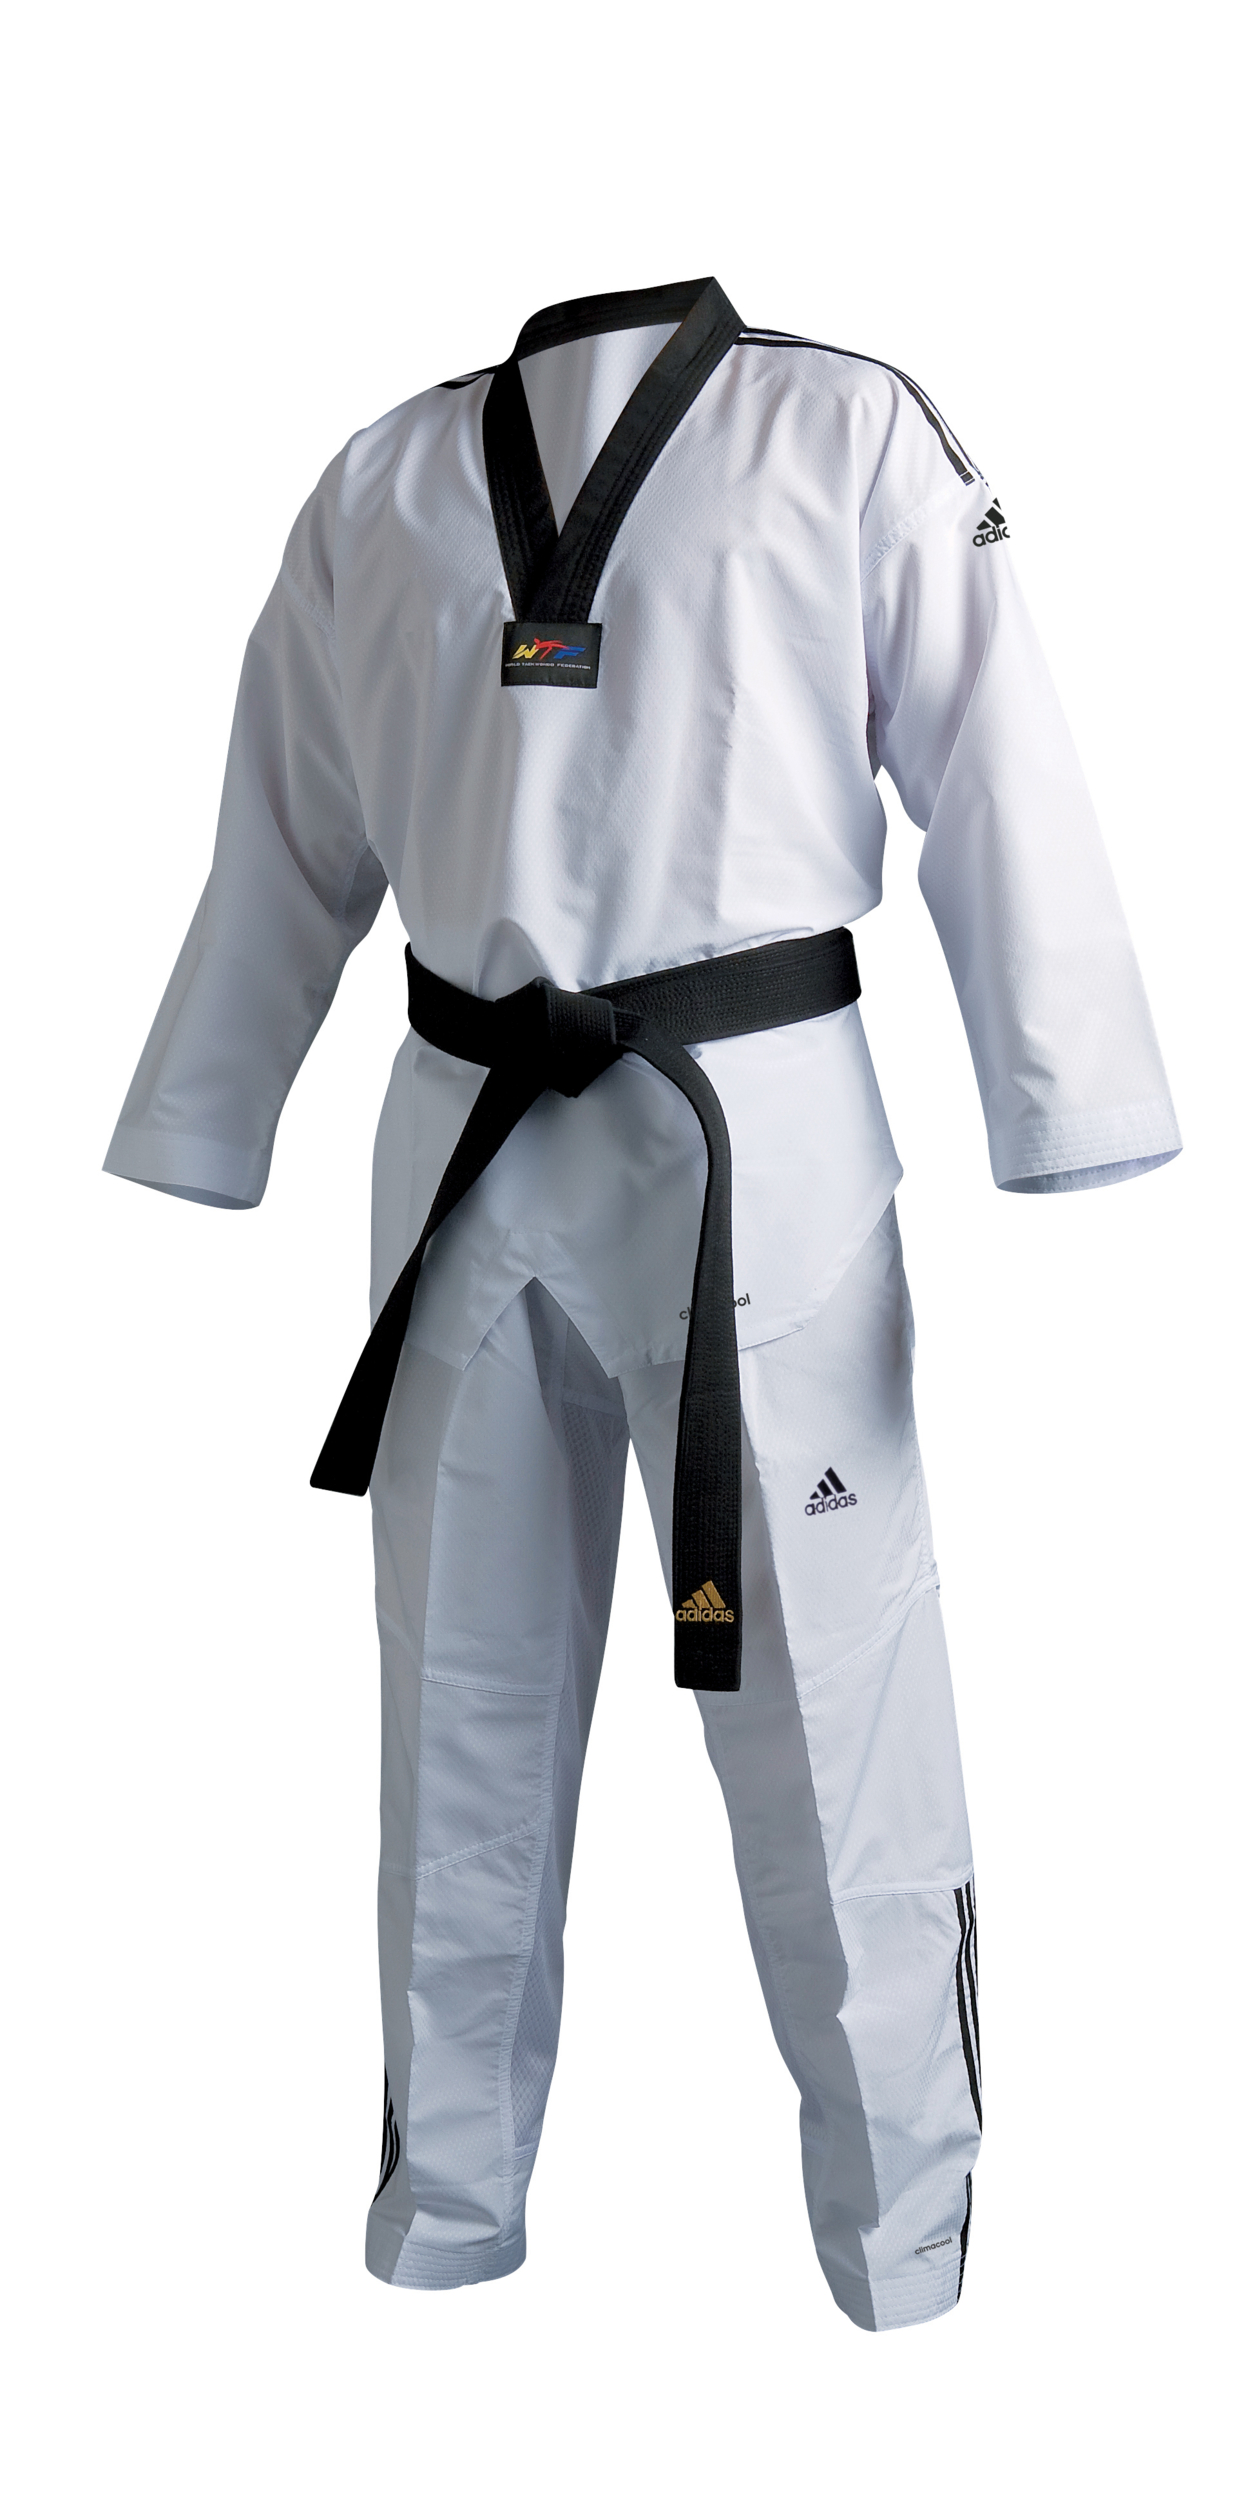 Dobok Adidas ADI FIGHTER 3